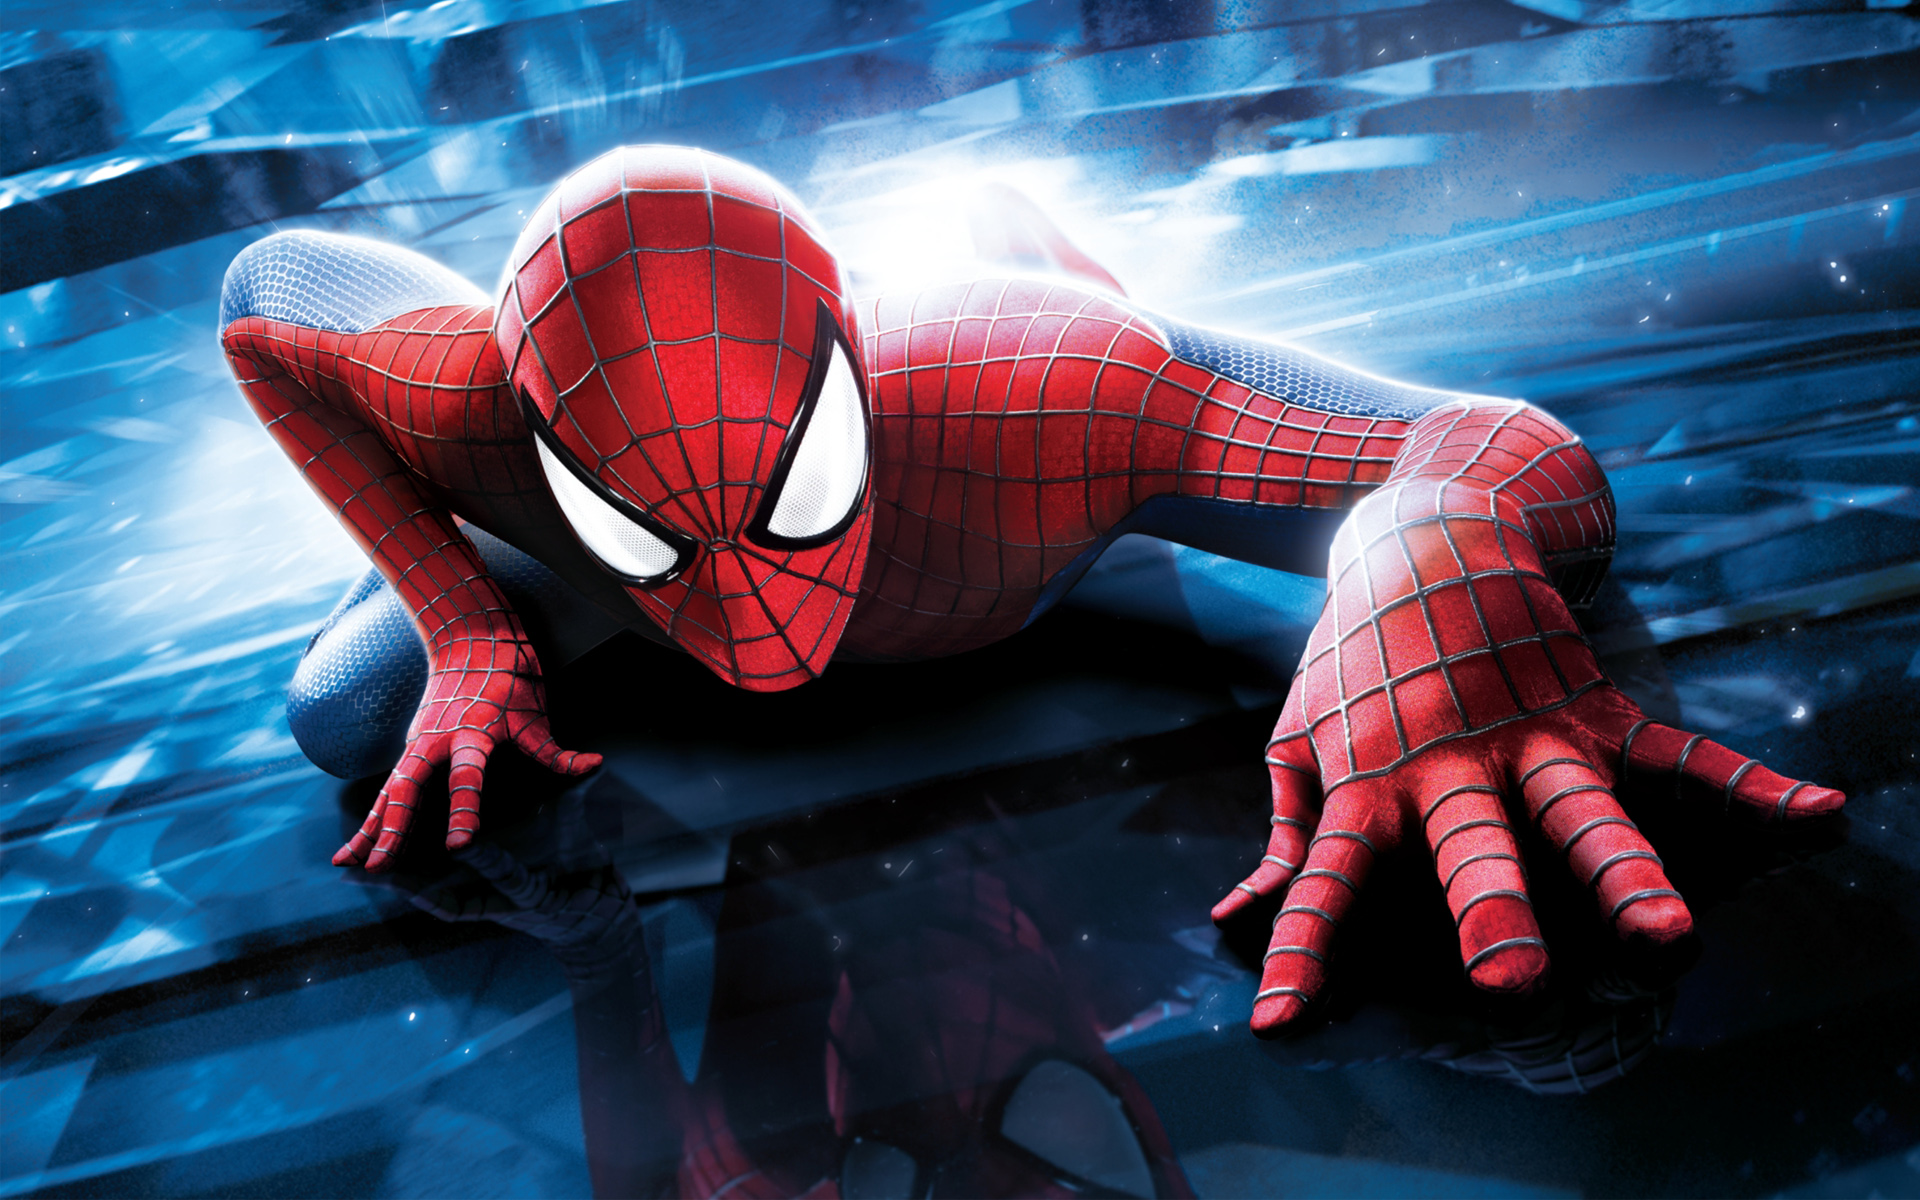 Spiderman Hd Wallpapers 1080P wallpaper   1387689 1920x1200